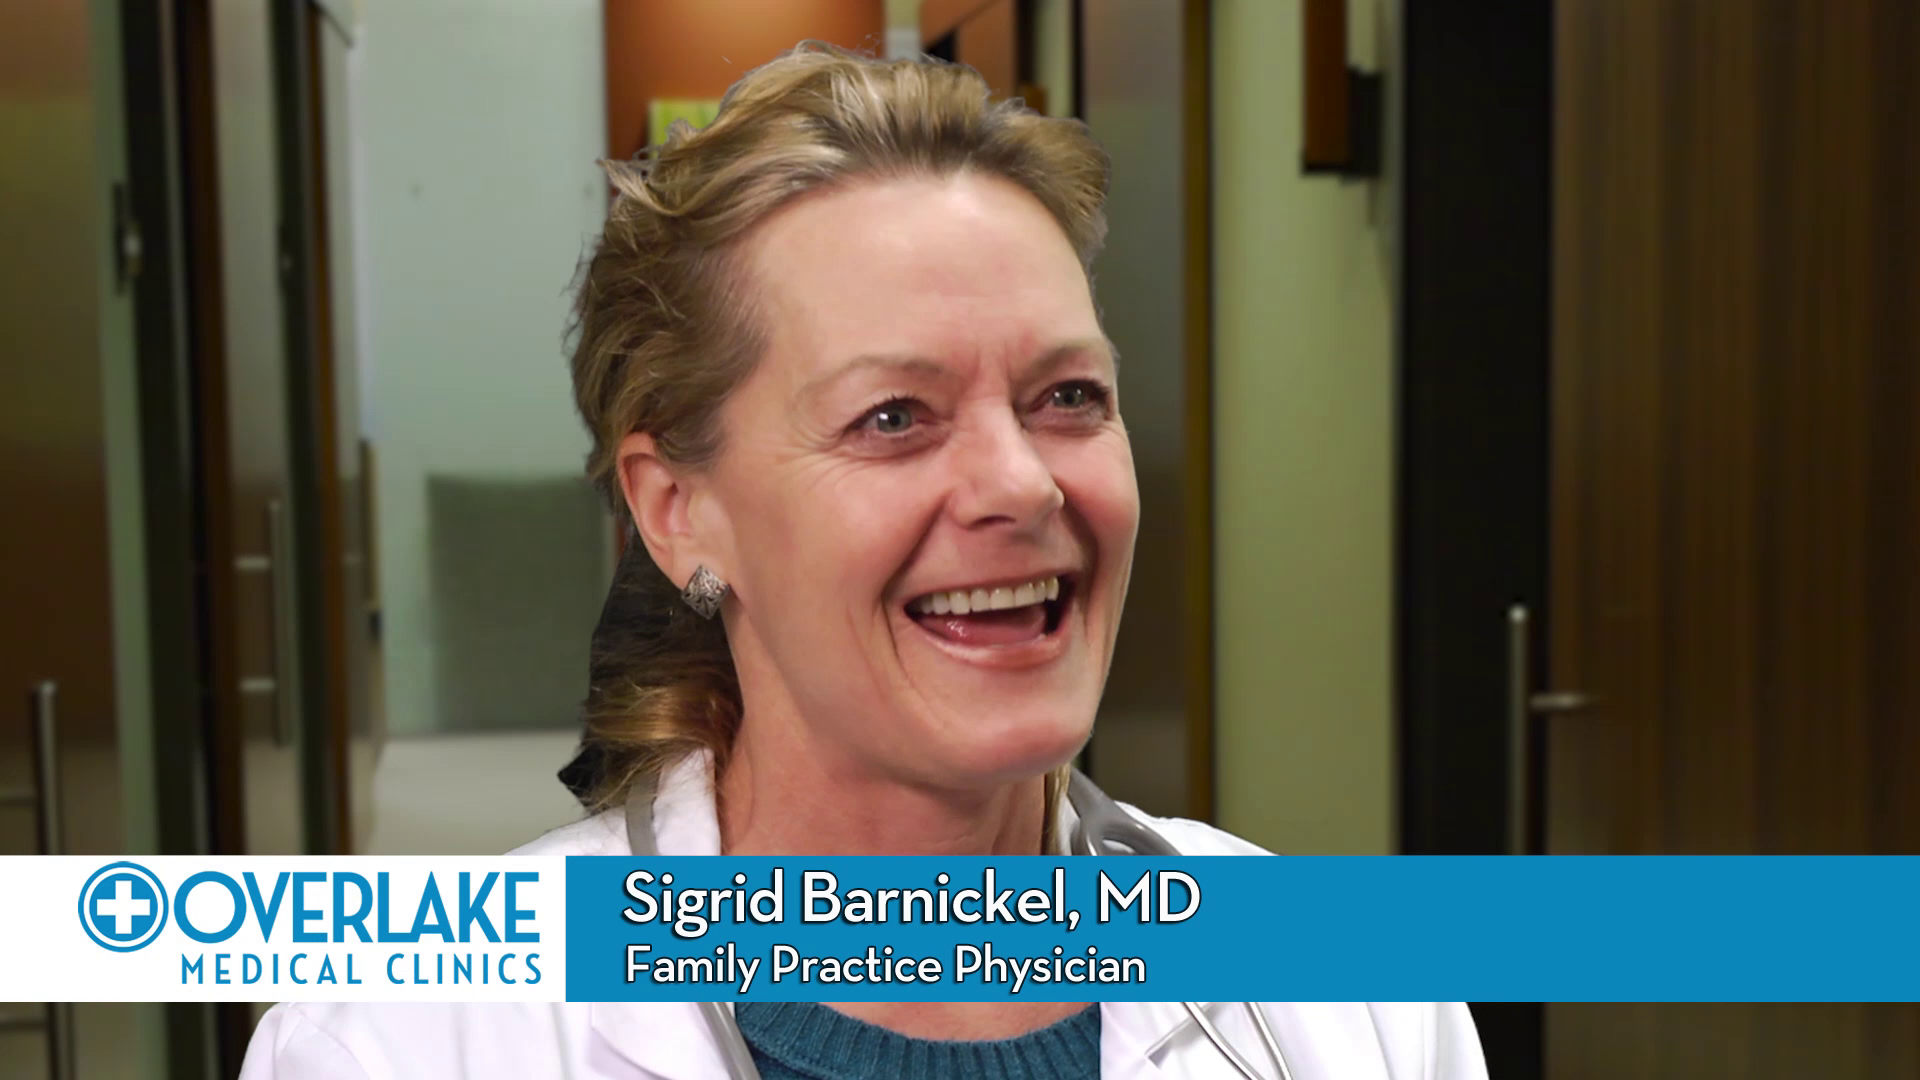 Dr. Barnickel talks about her practice